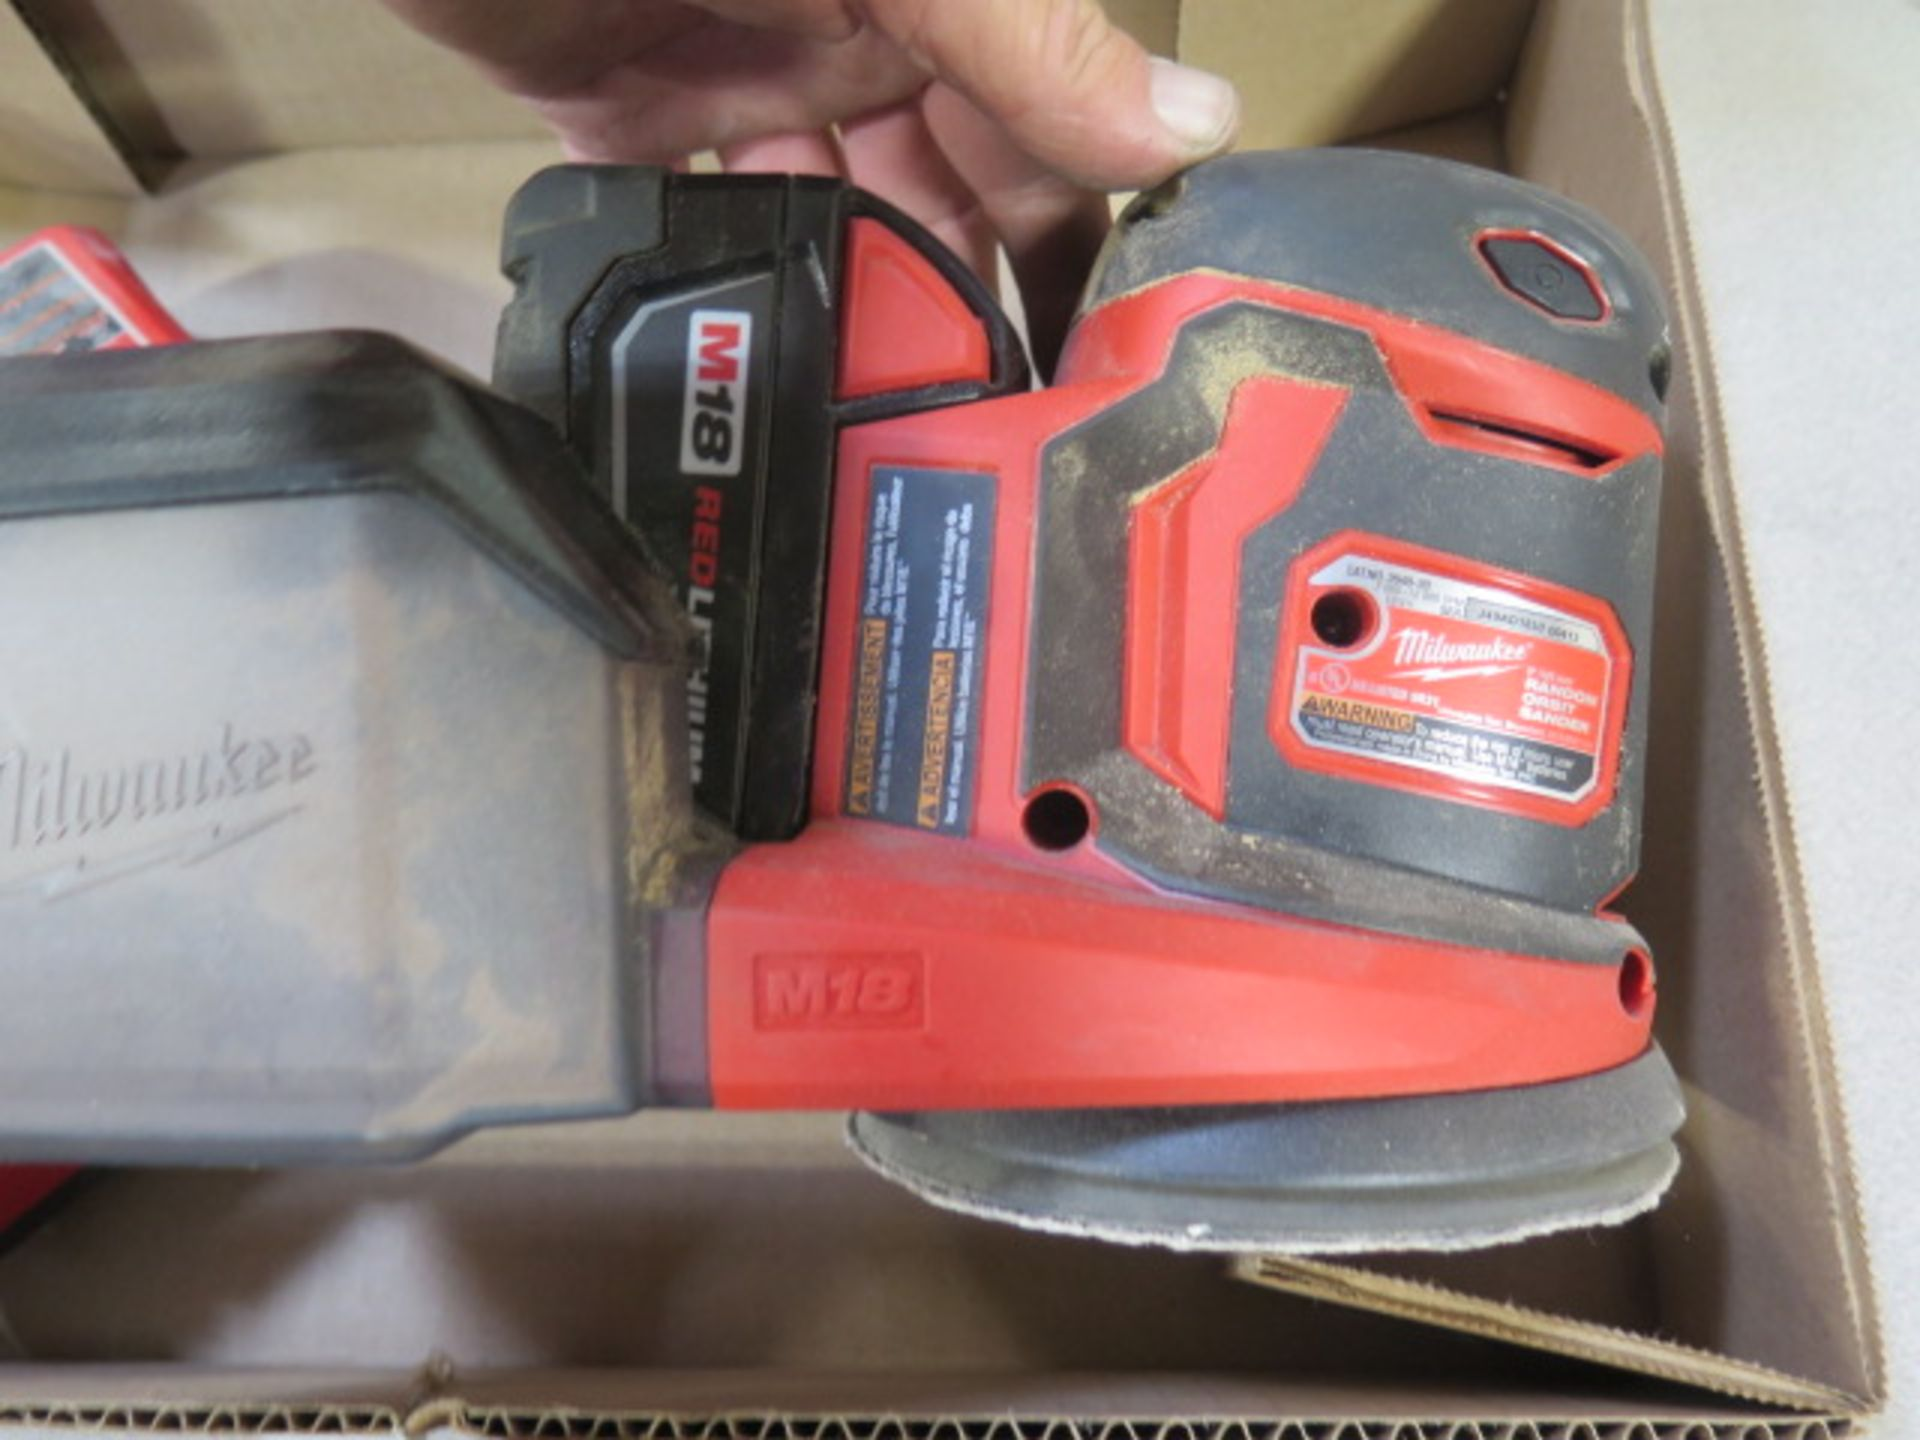 Milwaukee 18 Volt Orbital Sander w/ Charger (SOLD AS-IS - NO WARRANTY) - Image 3 of 6